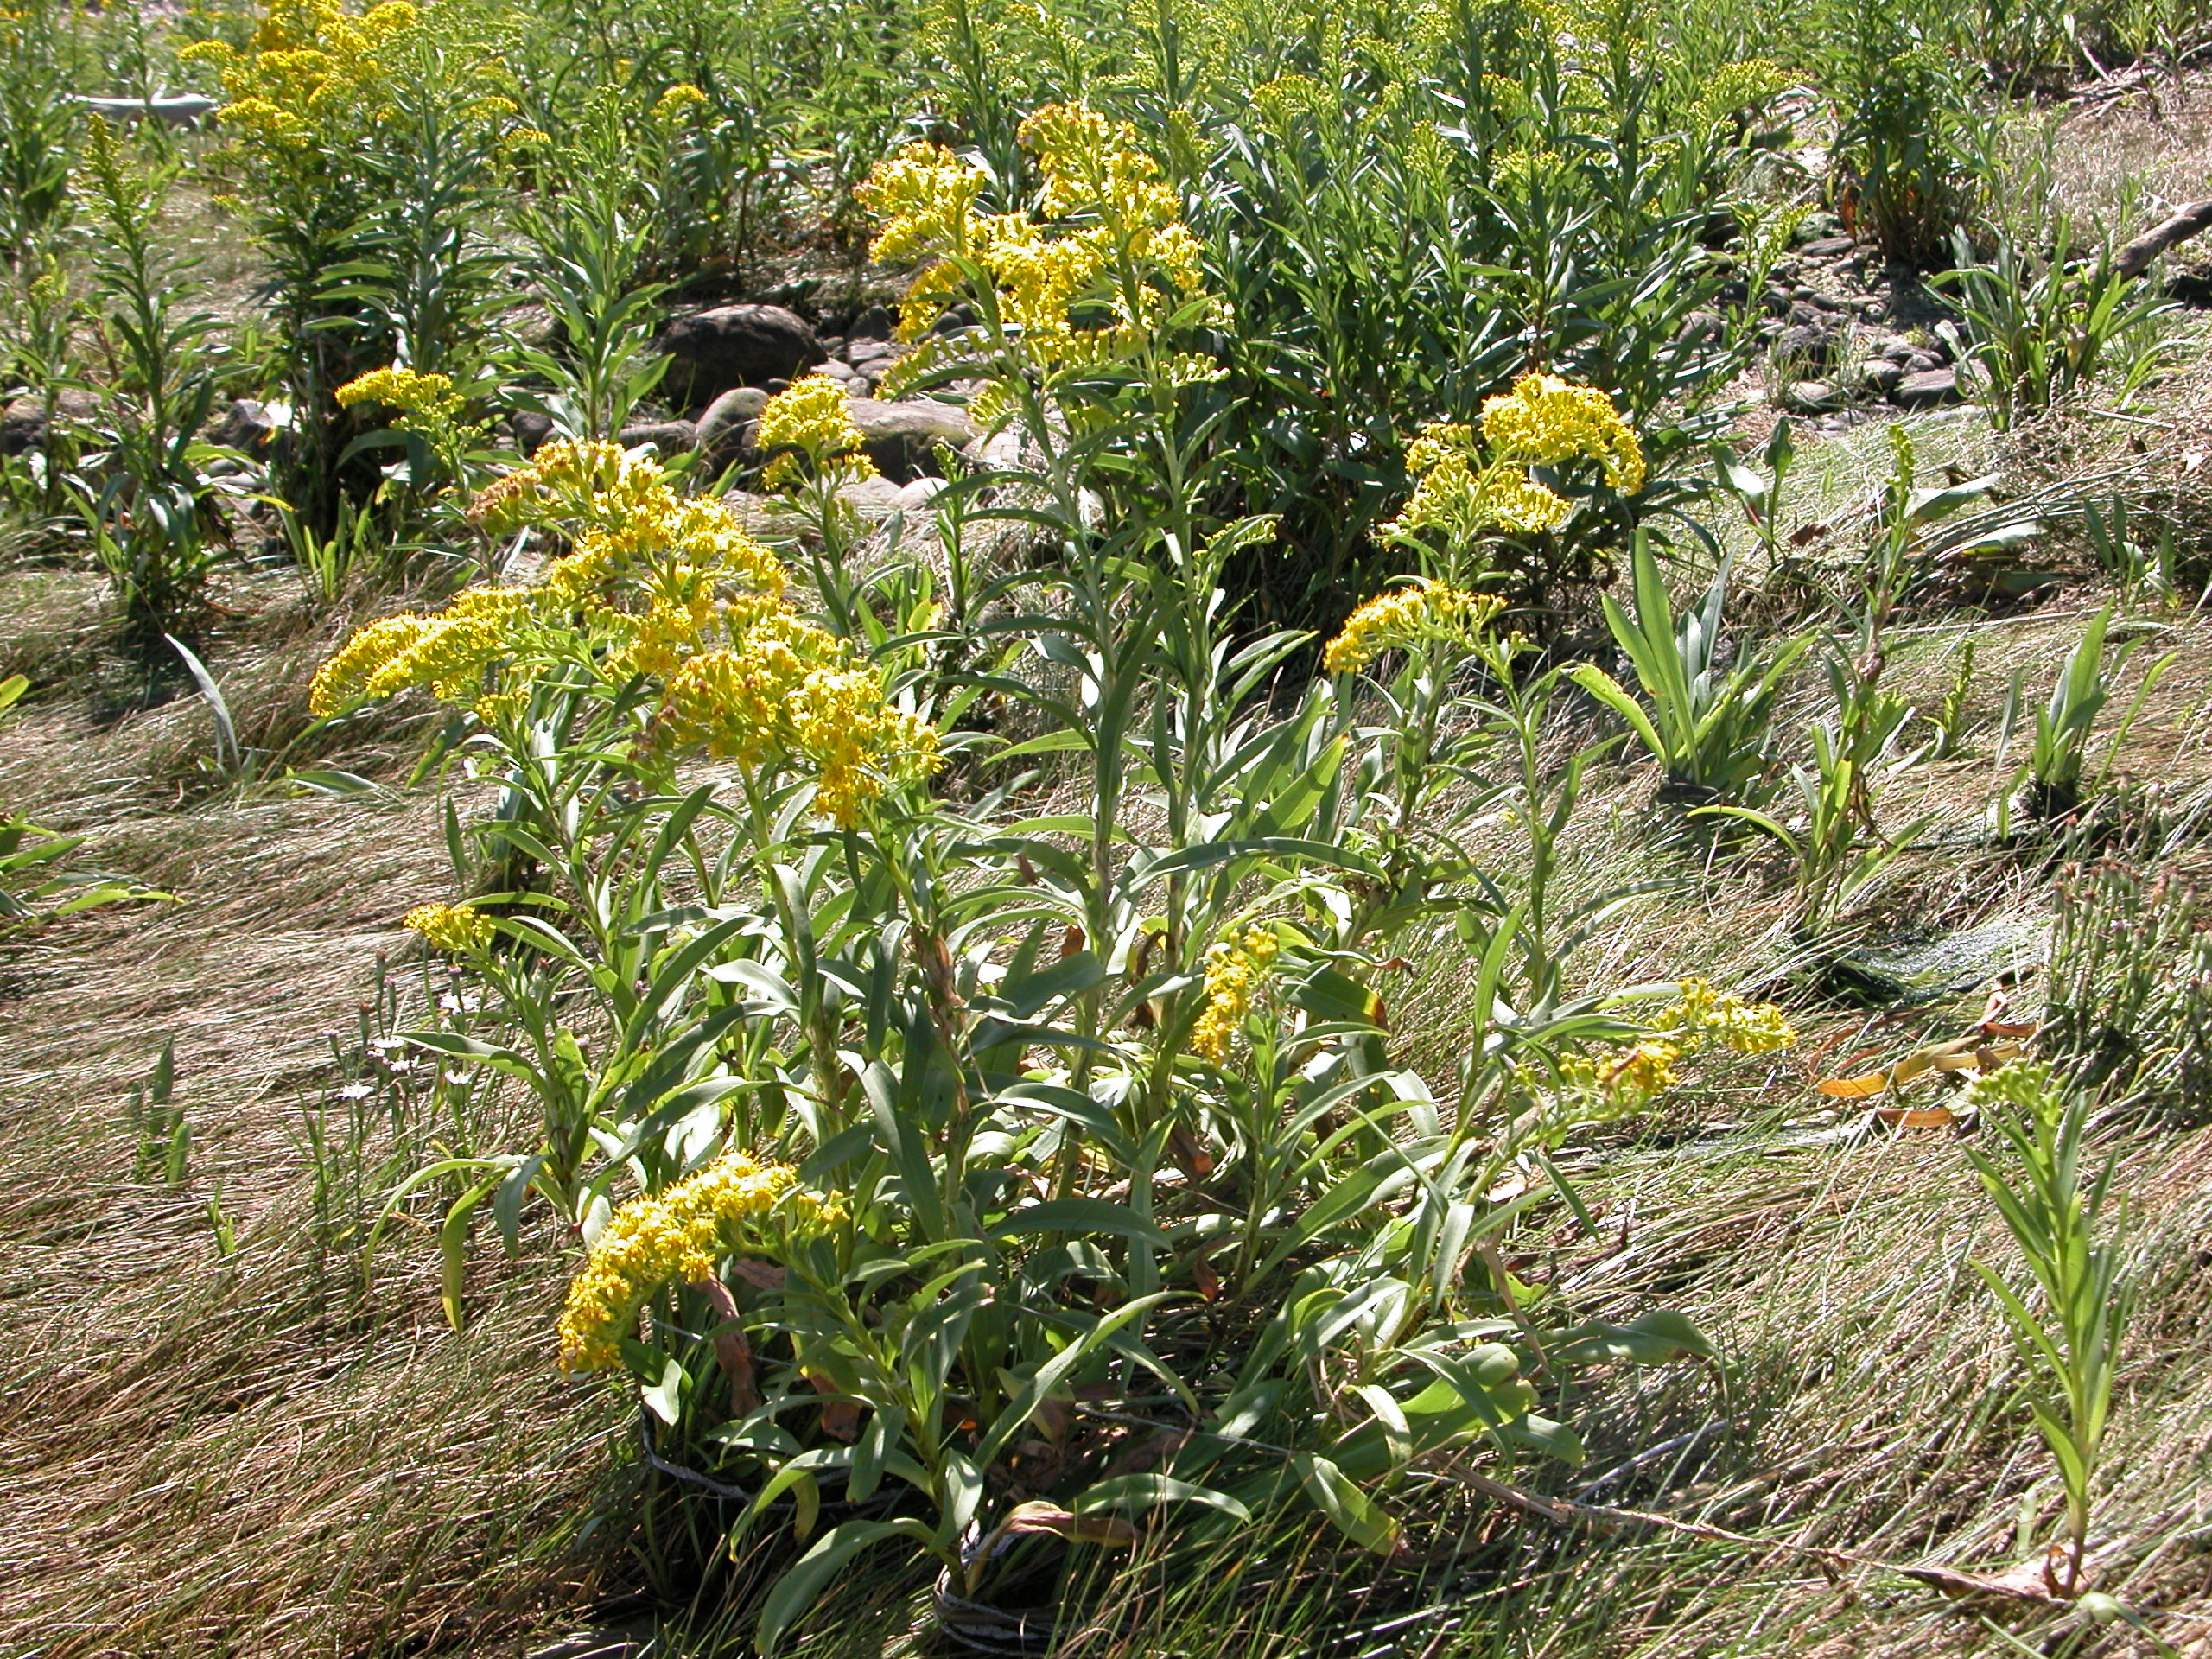 Seaside goldenrod, showing yellow flower cluster atop narrow green leaves.